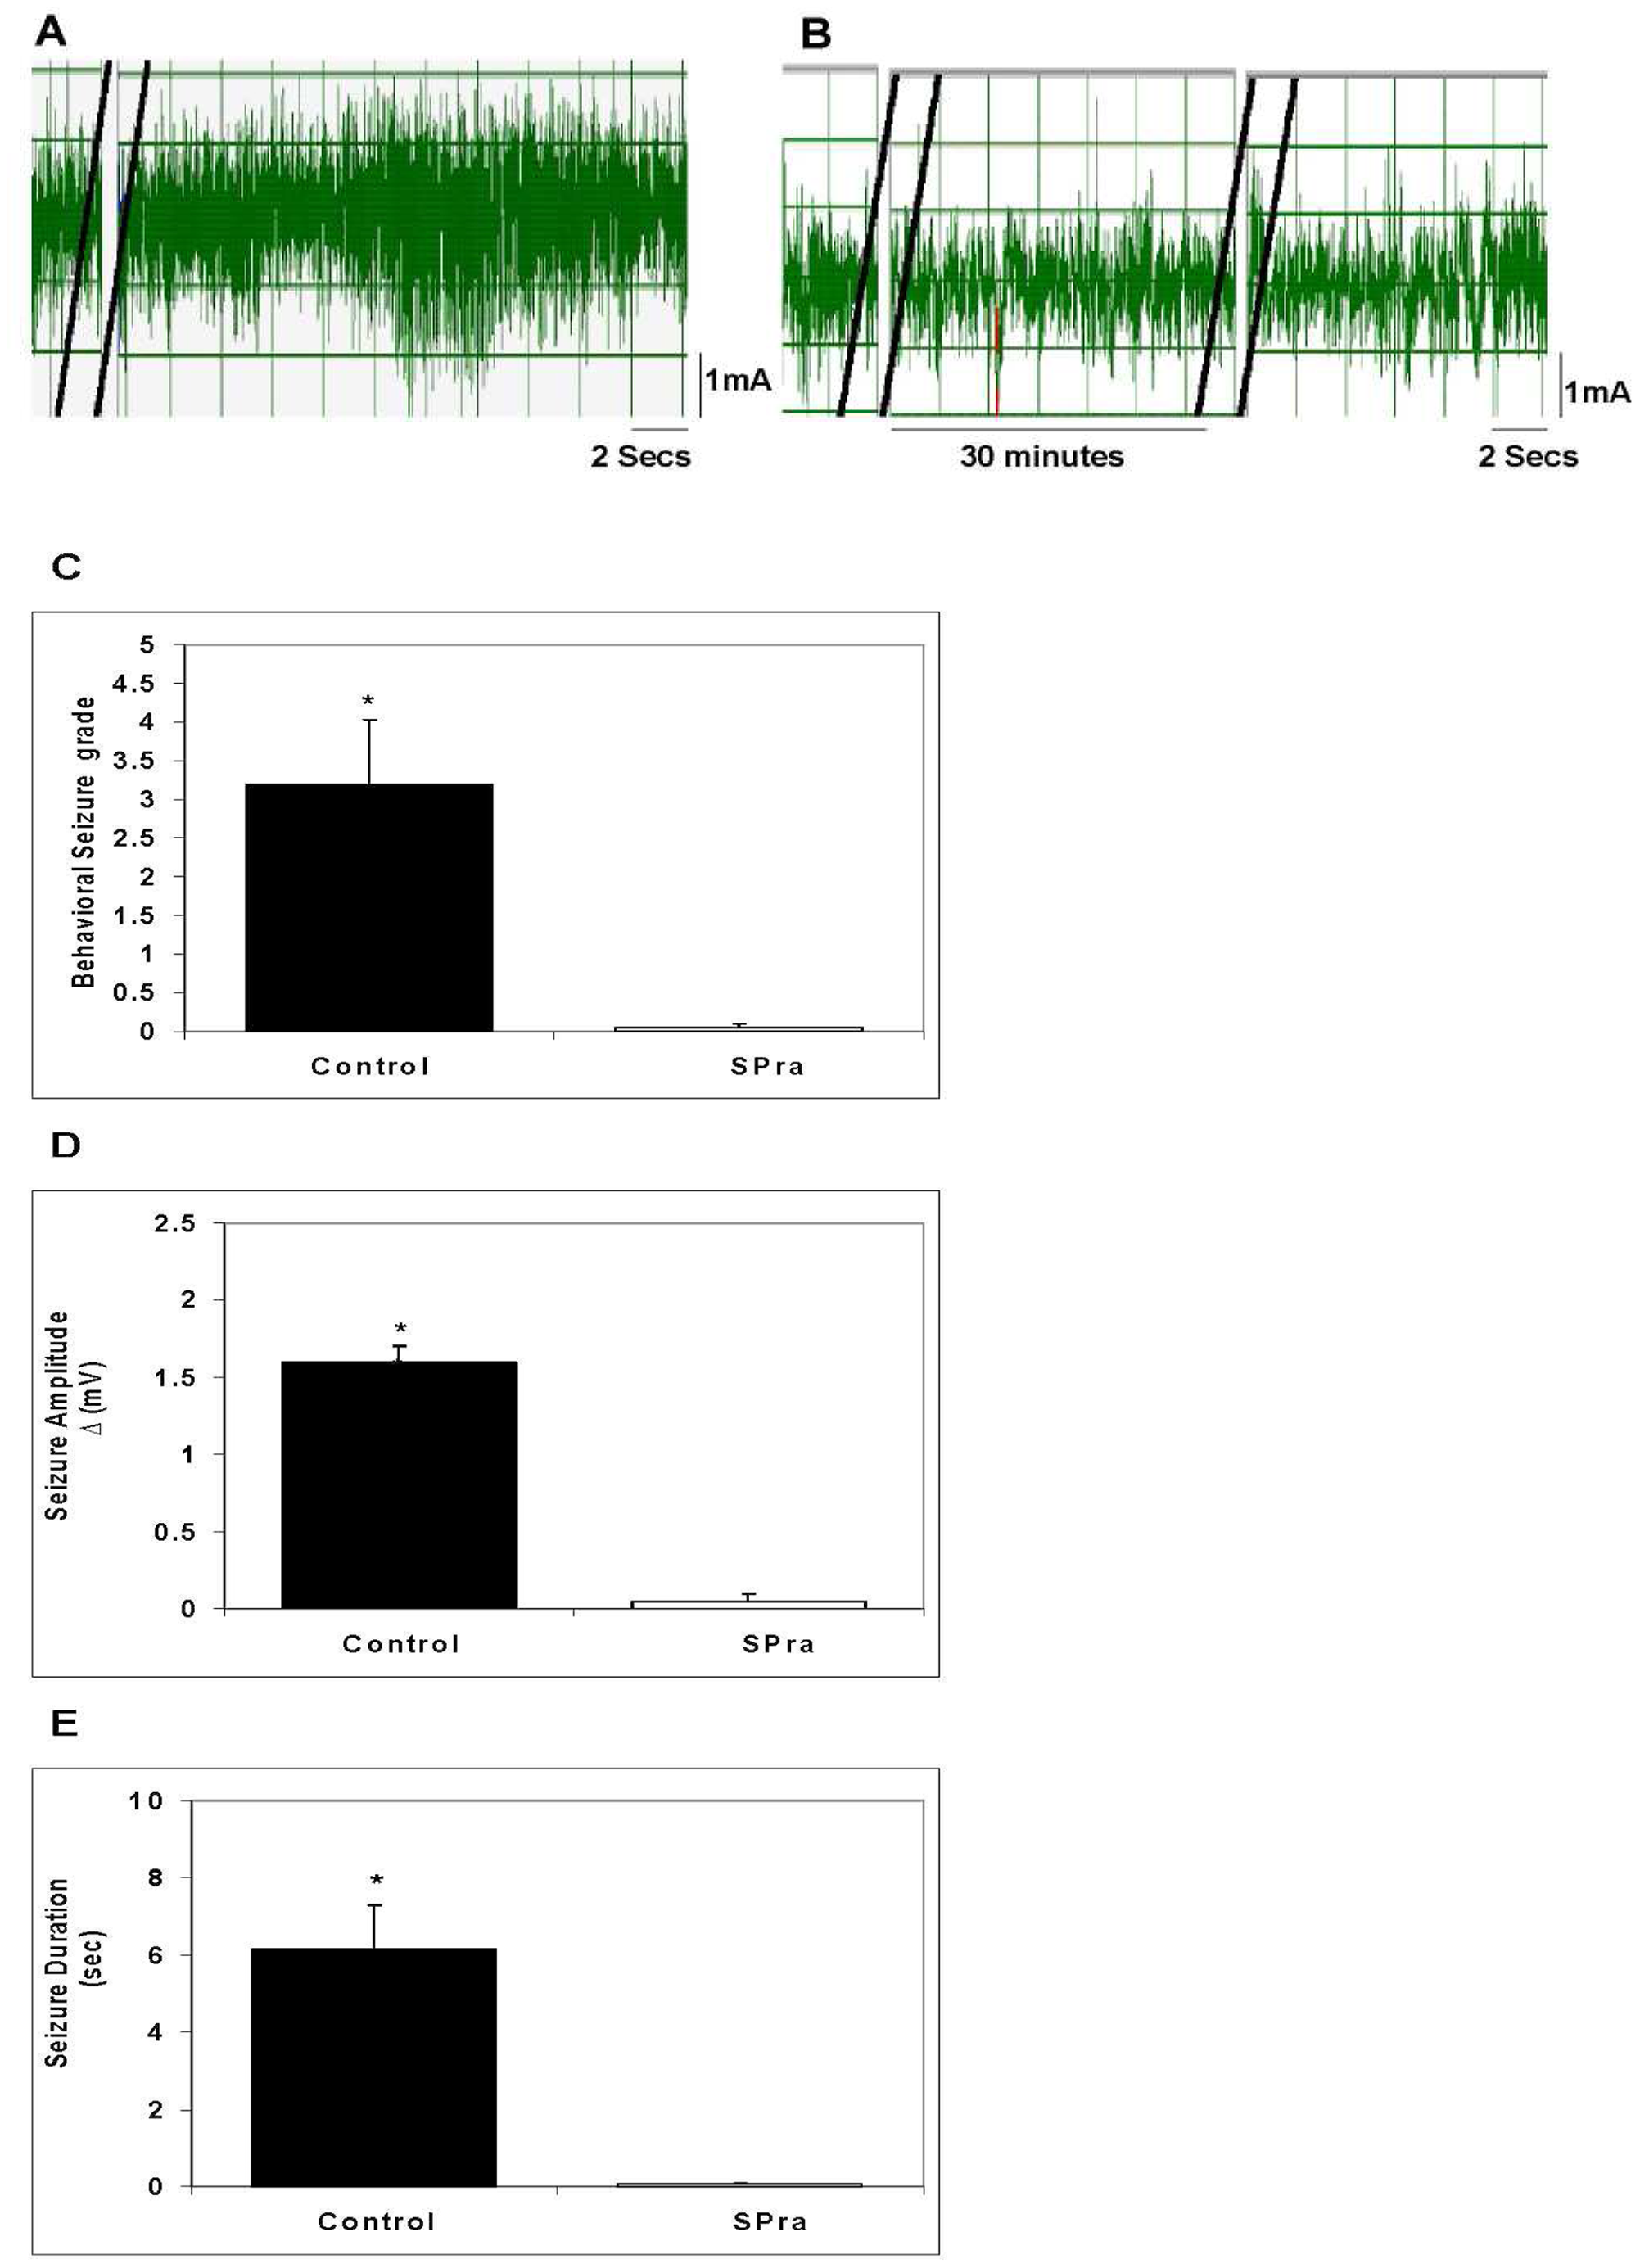 Effect of SP receptor antagonist (SPra) pre-treatment on granuloma extract-induced seizure activity in rats.